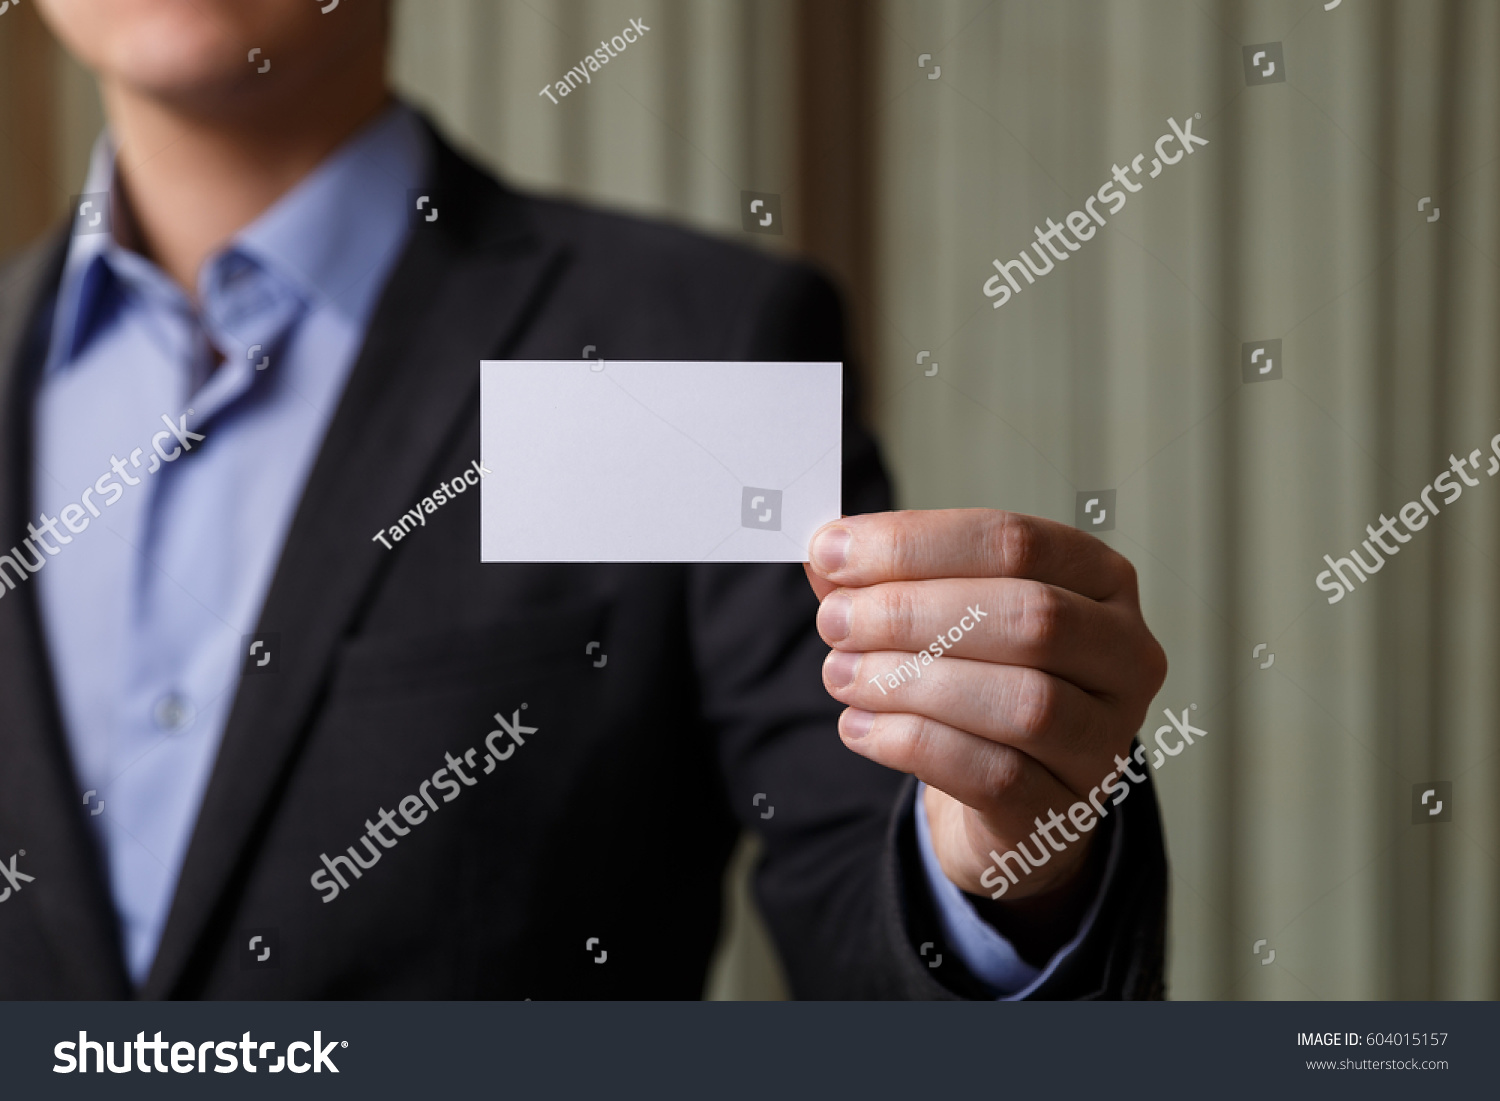 Businessman Holding Visit Card Man Showing Stock Photo 604015157 ...